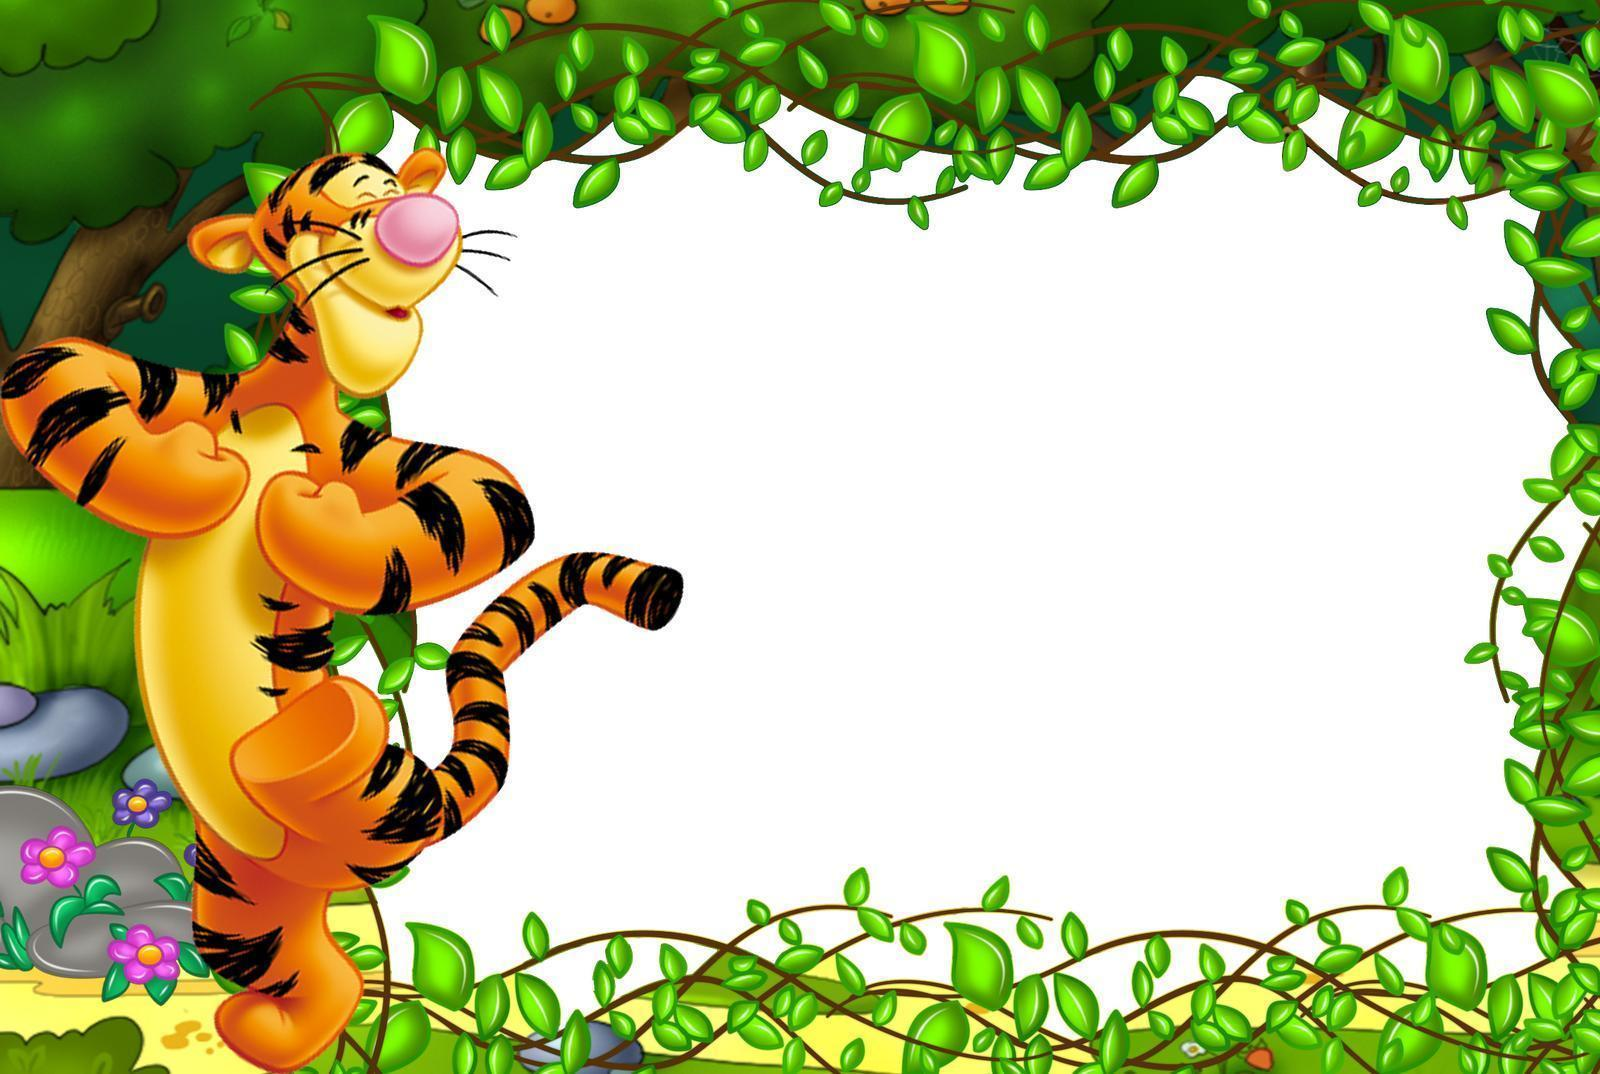 loki background for tigger - photo #35